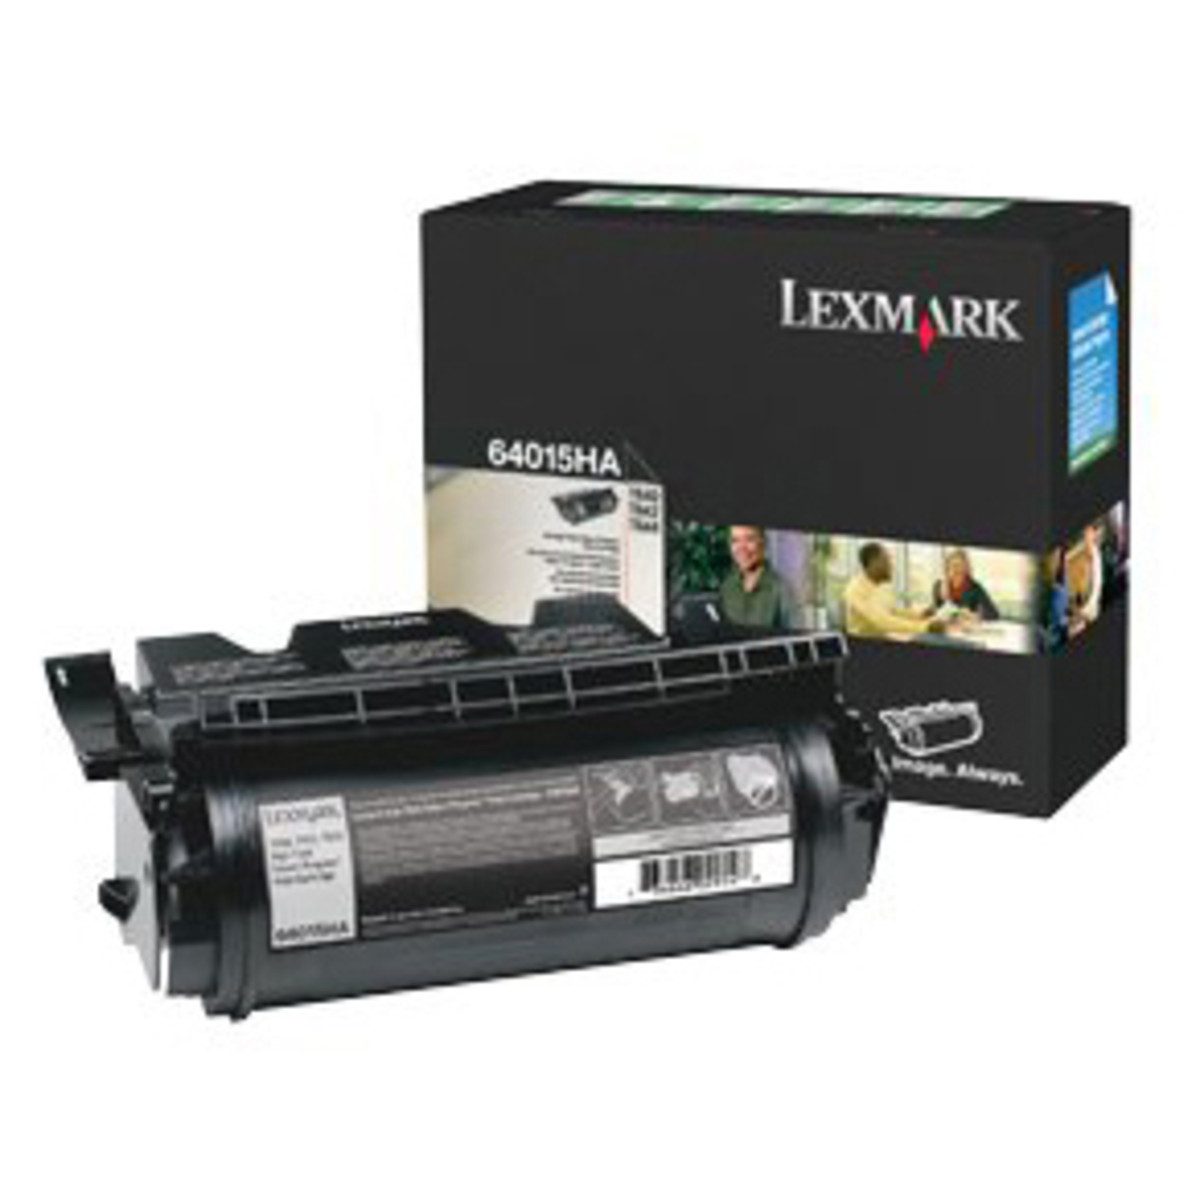 Lexmark 64017HR Black Prebate Toner Cartridge